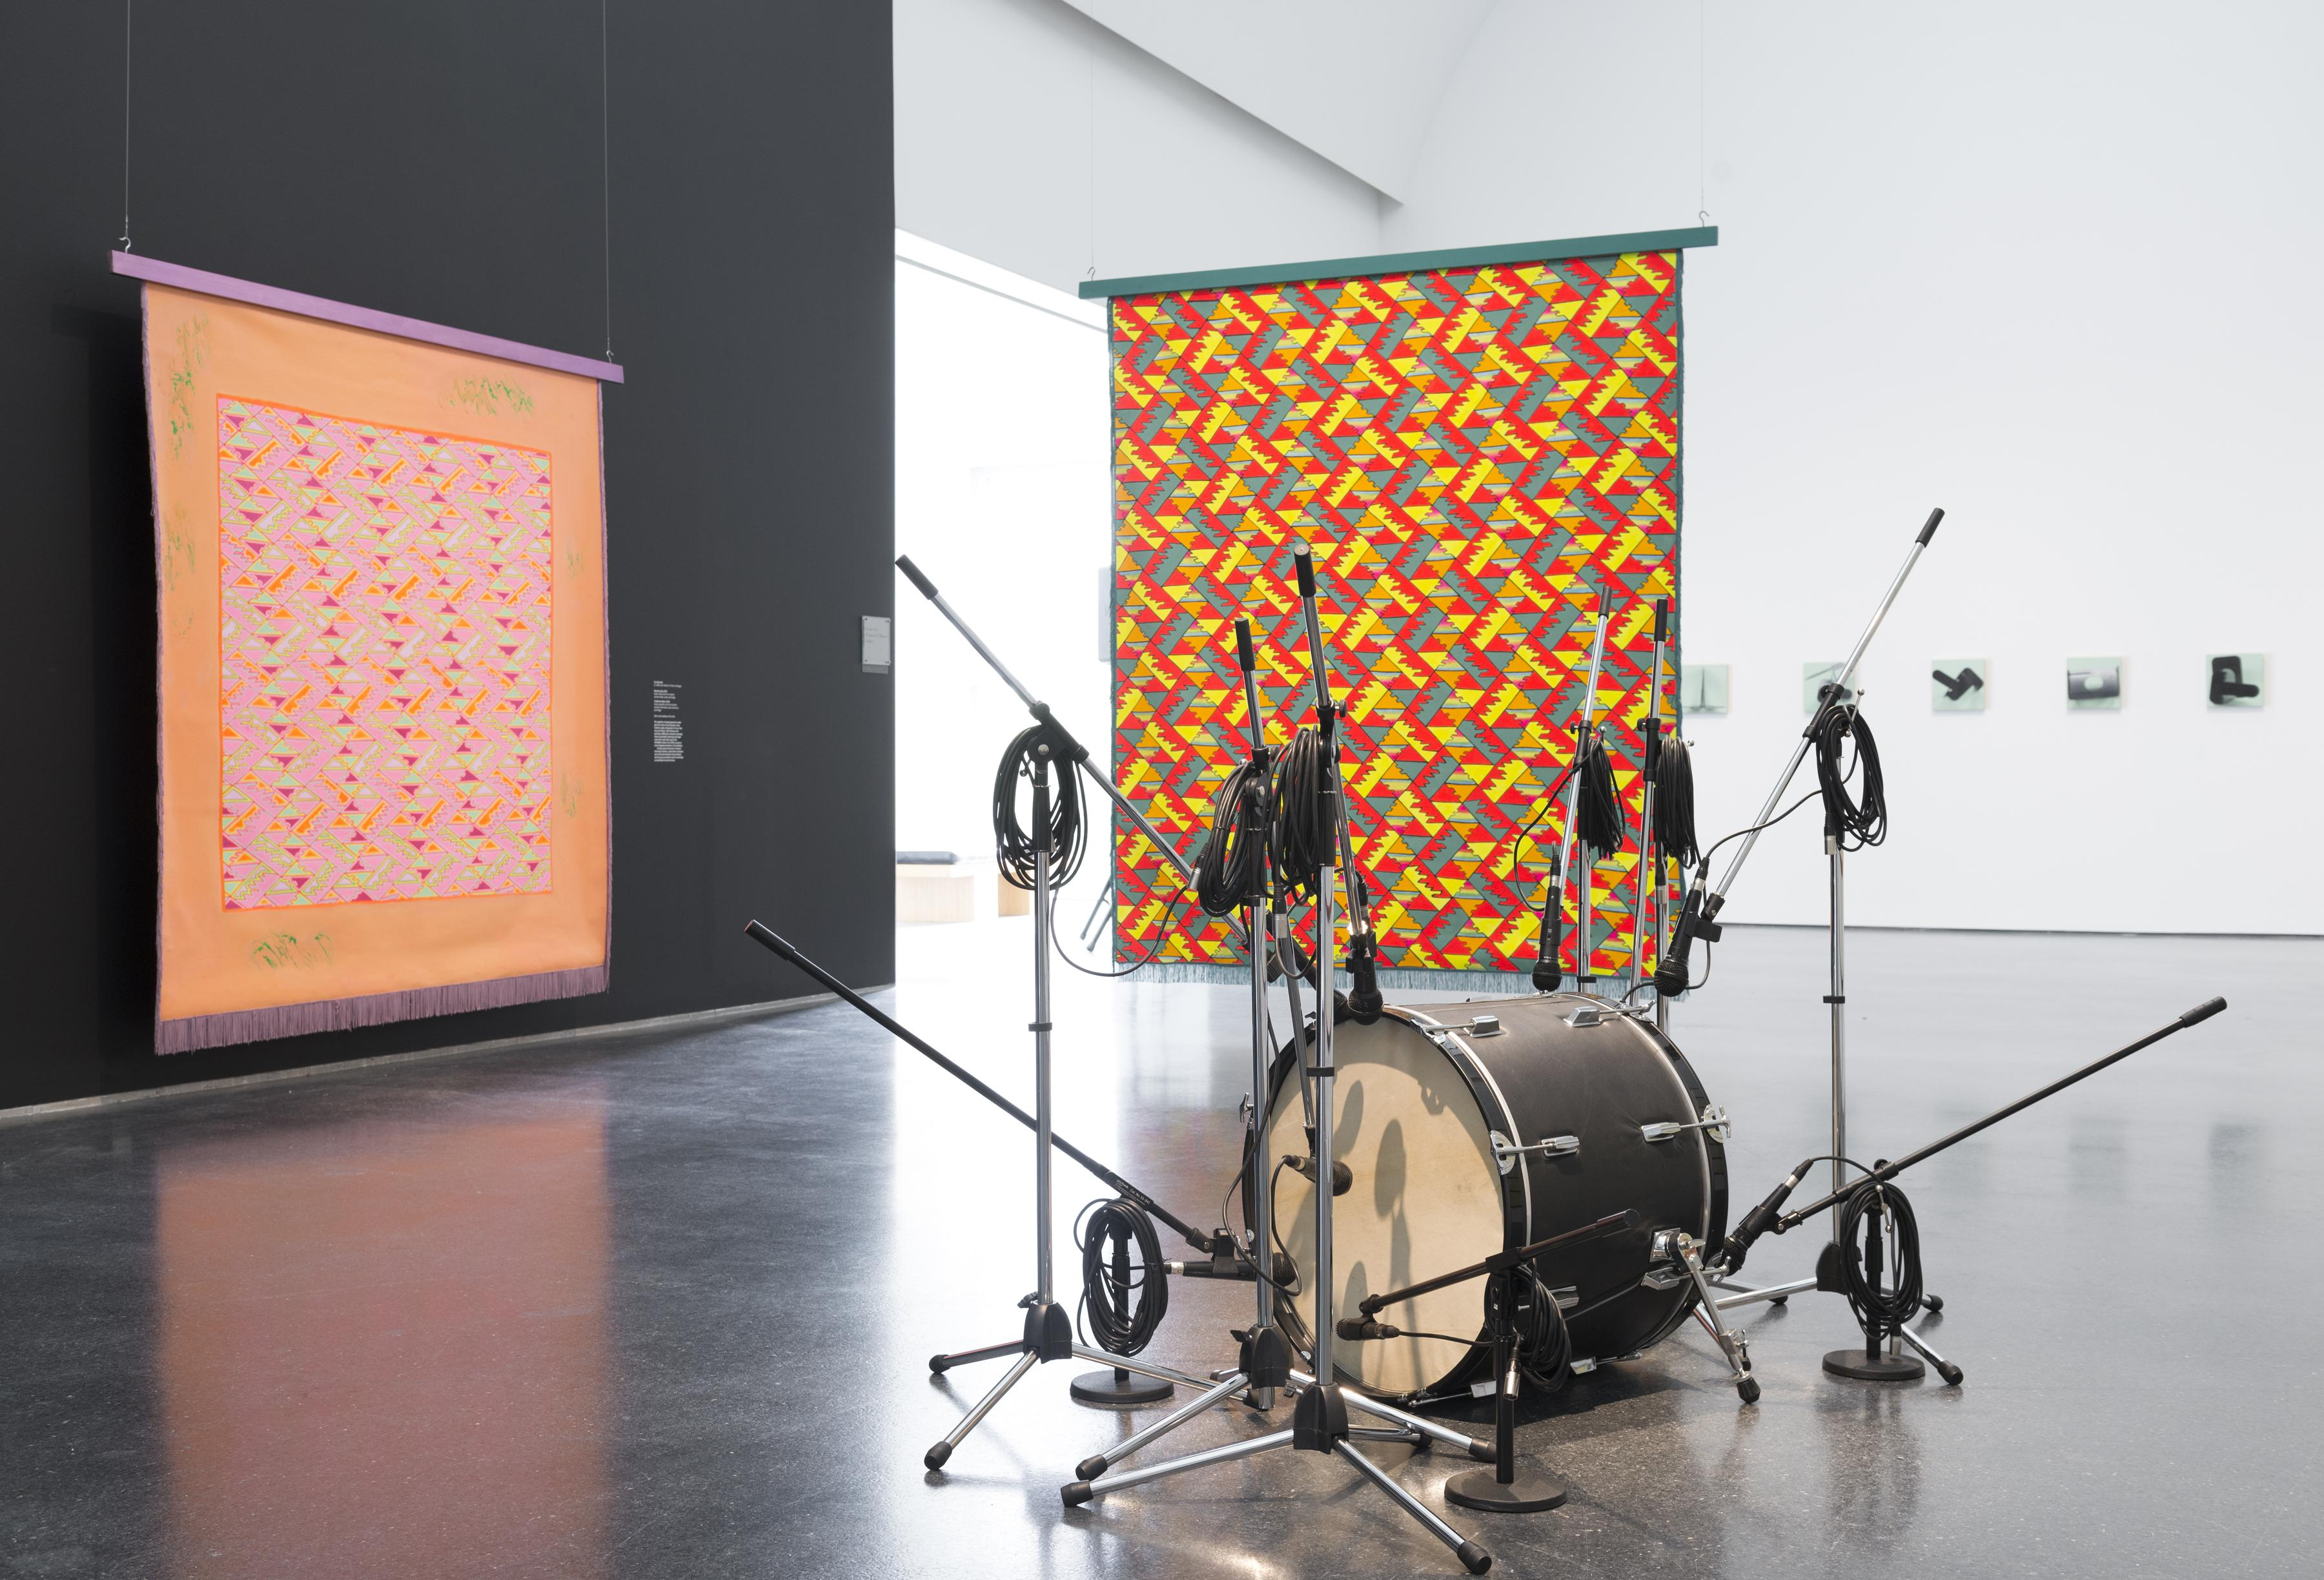 A bass drum surrounded by microphones on stands in front of brightly colored suspended backdrops